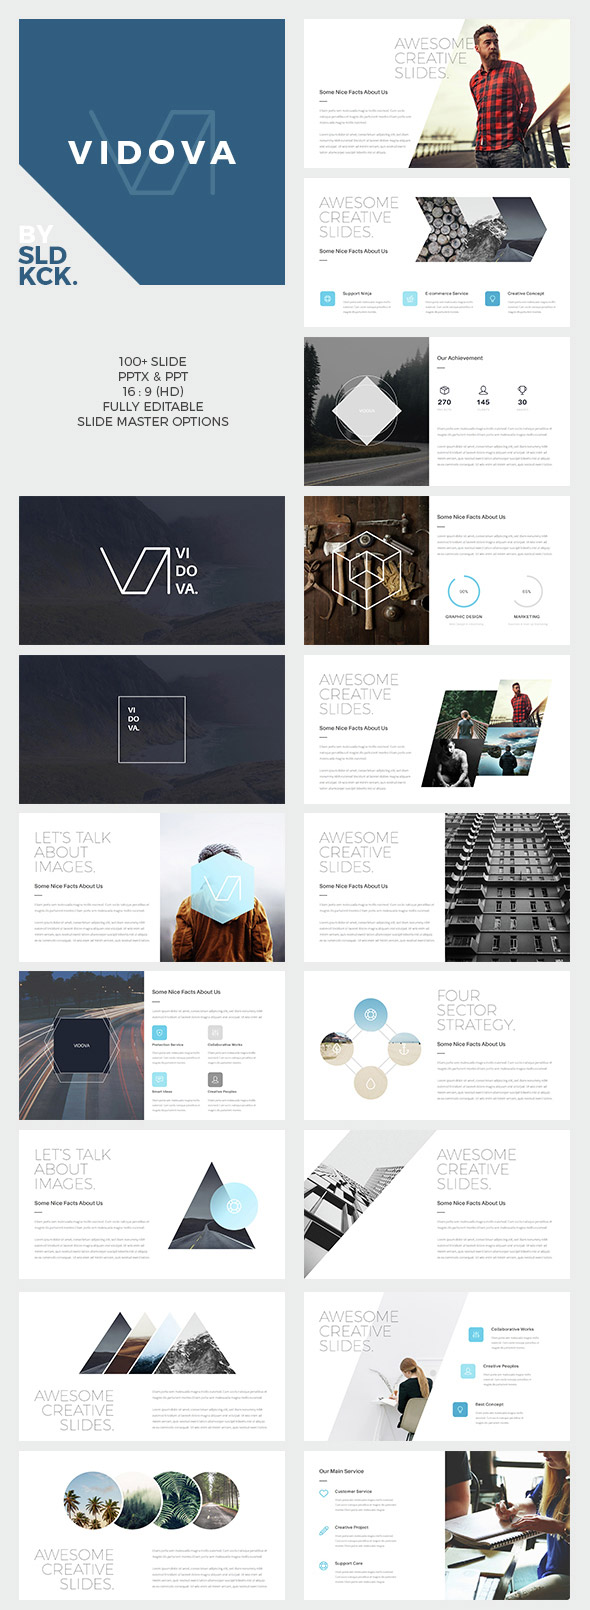 20 ppt templates: for simple, modern powerpoint presentations, Modern powerpoint